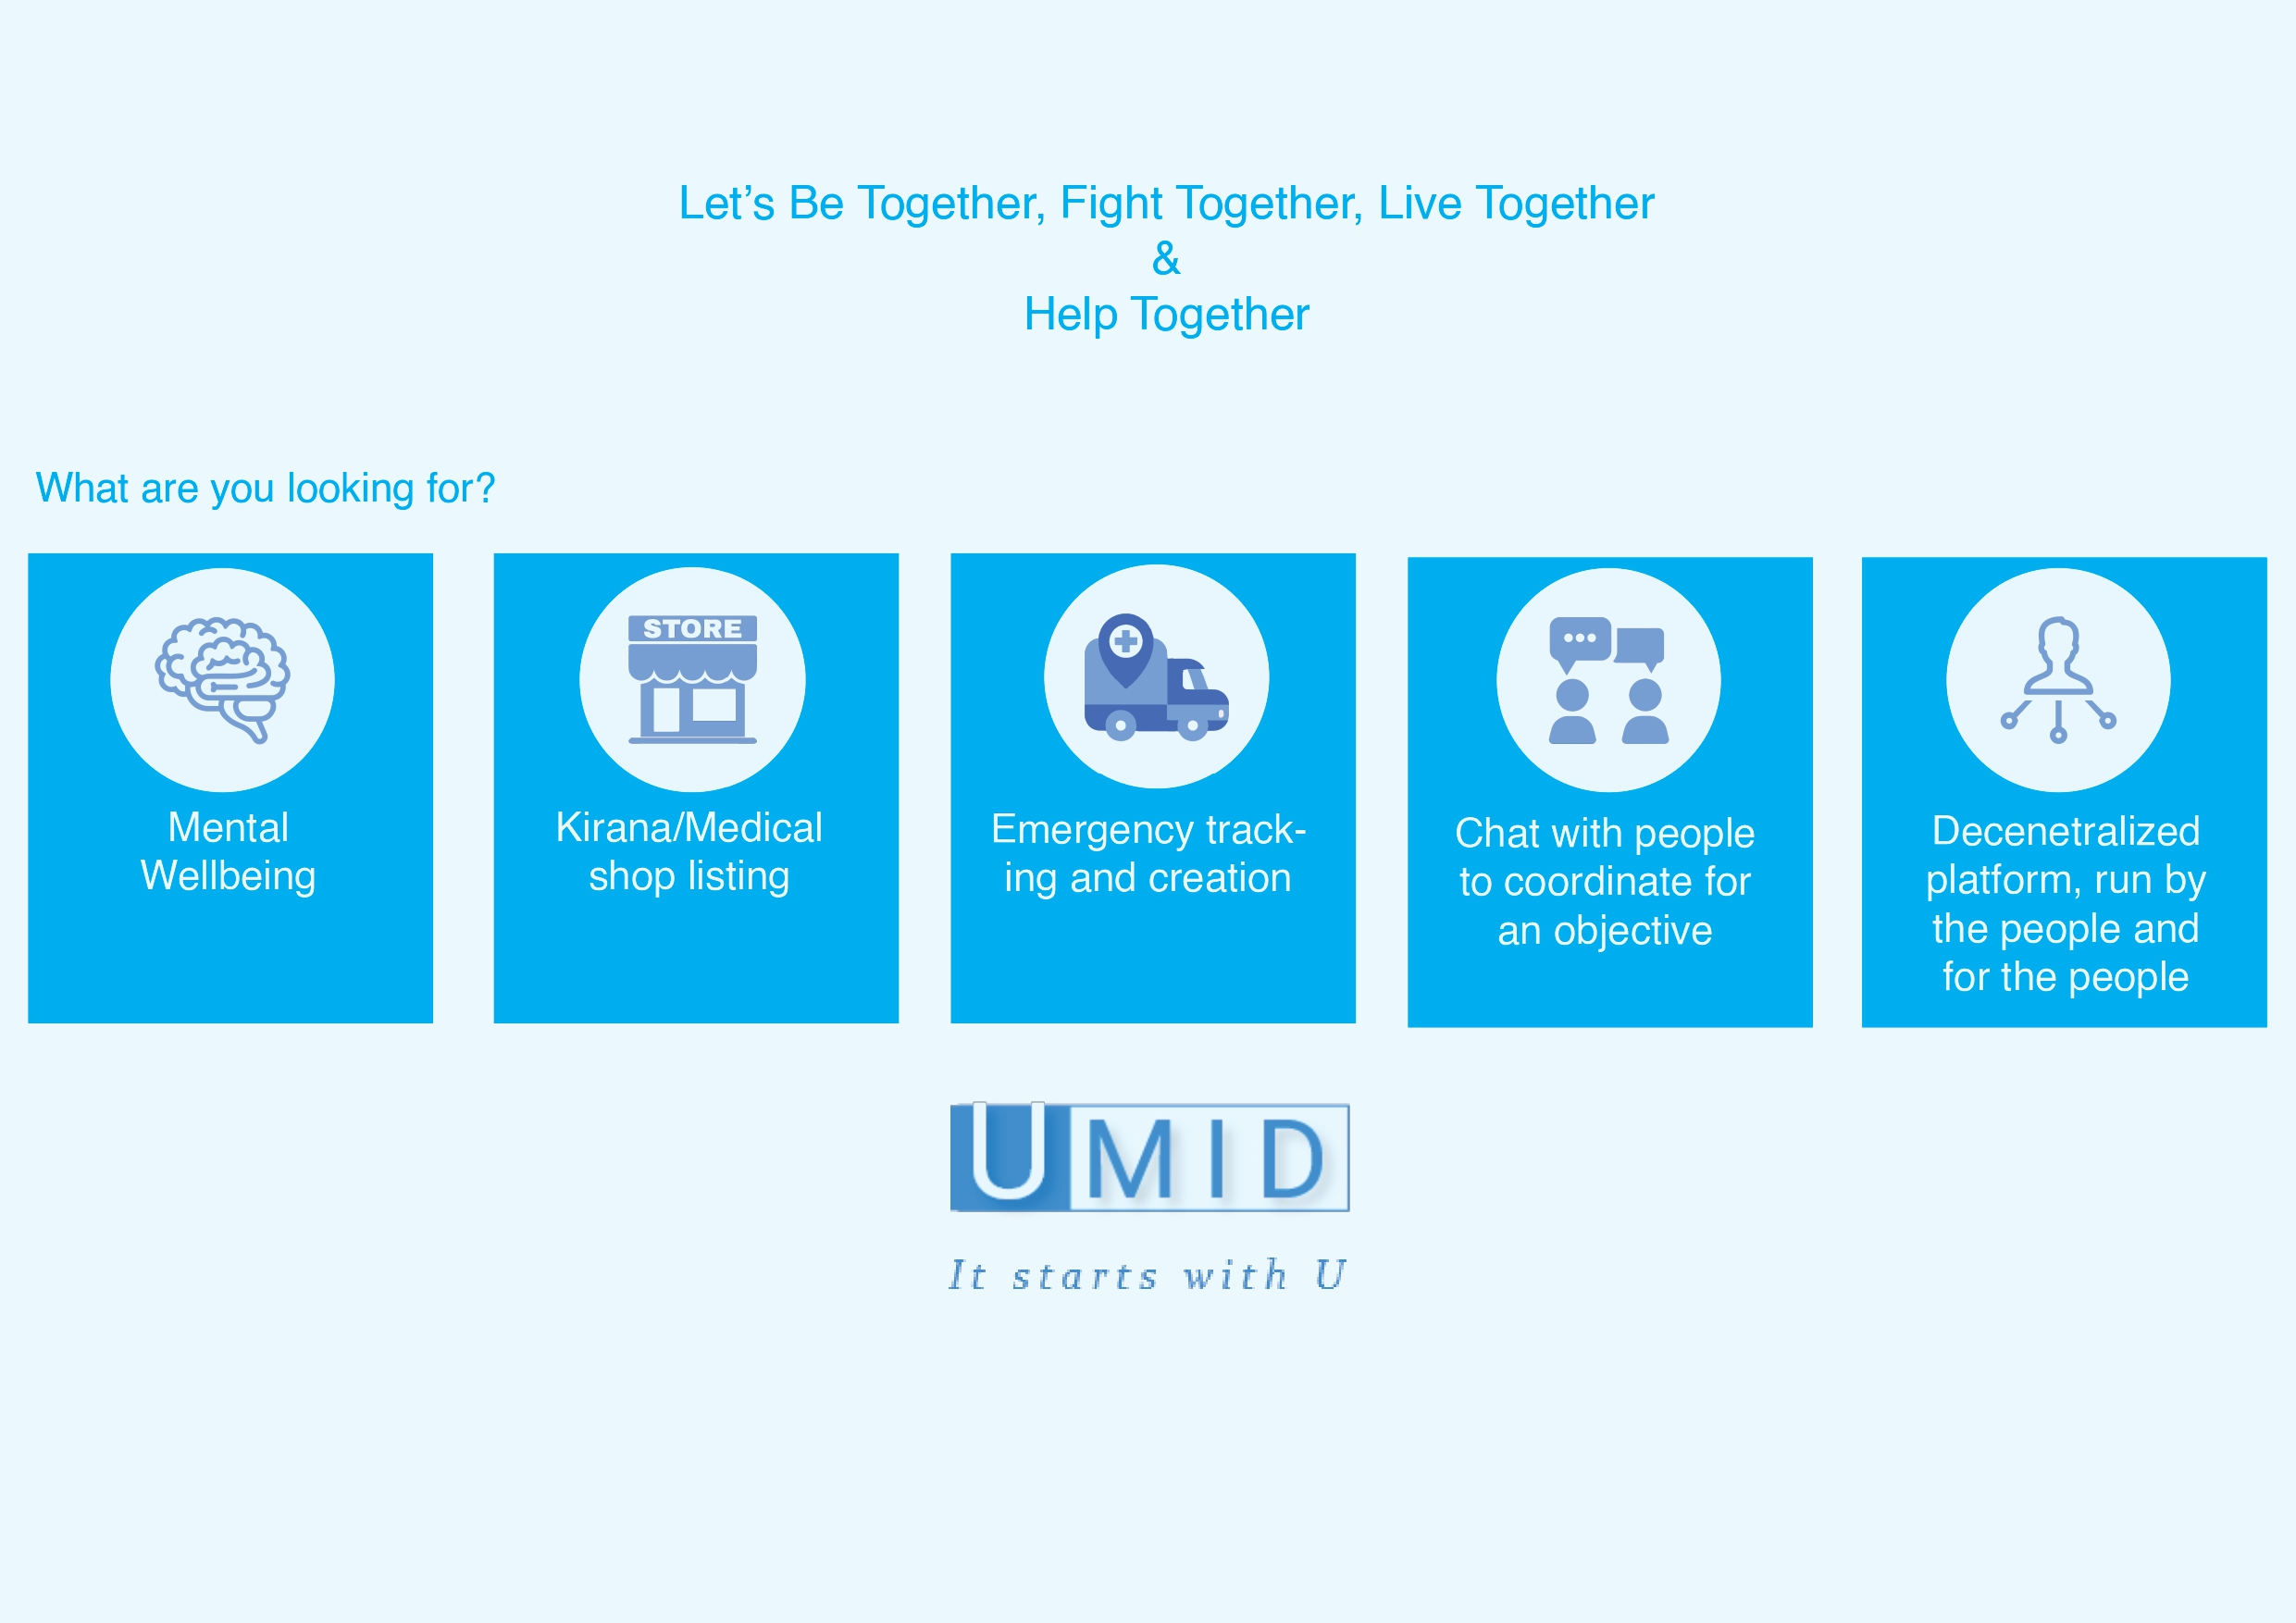 UMID - Collaborate & Help